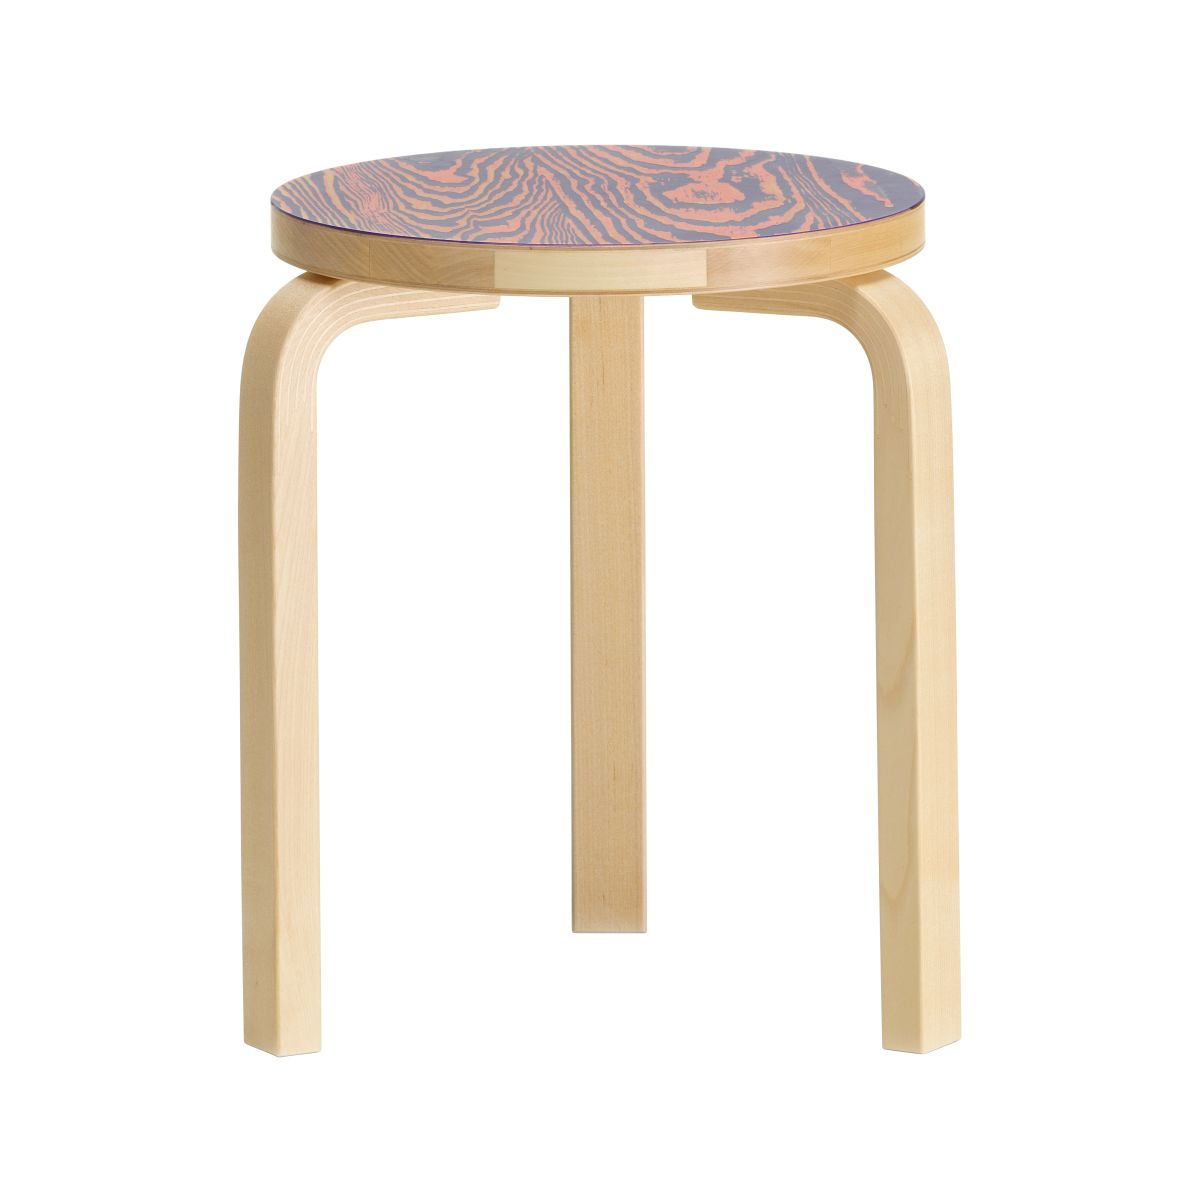 Stool-60-Colo Ring-pink-purple_F-2665068